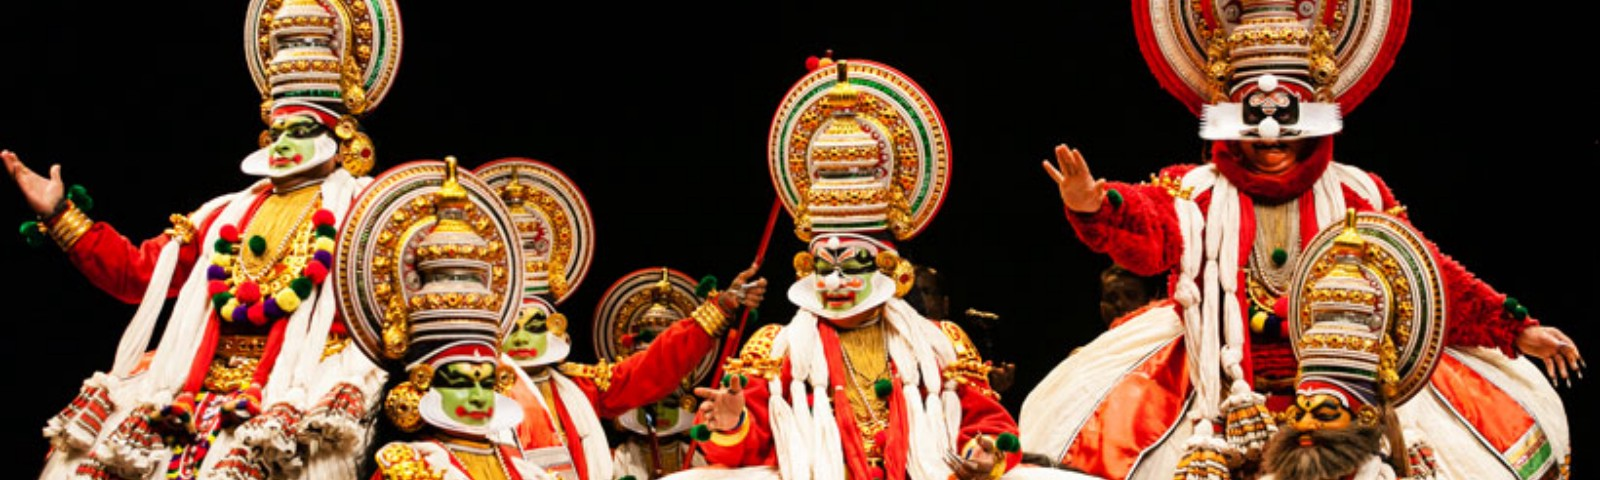 art form with humour in kerala Traditional Art Forms Of Kerala. A Complete Guide About The